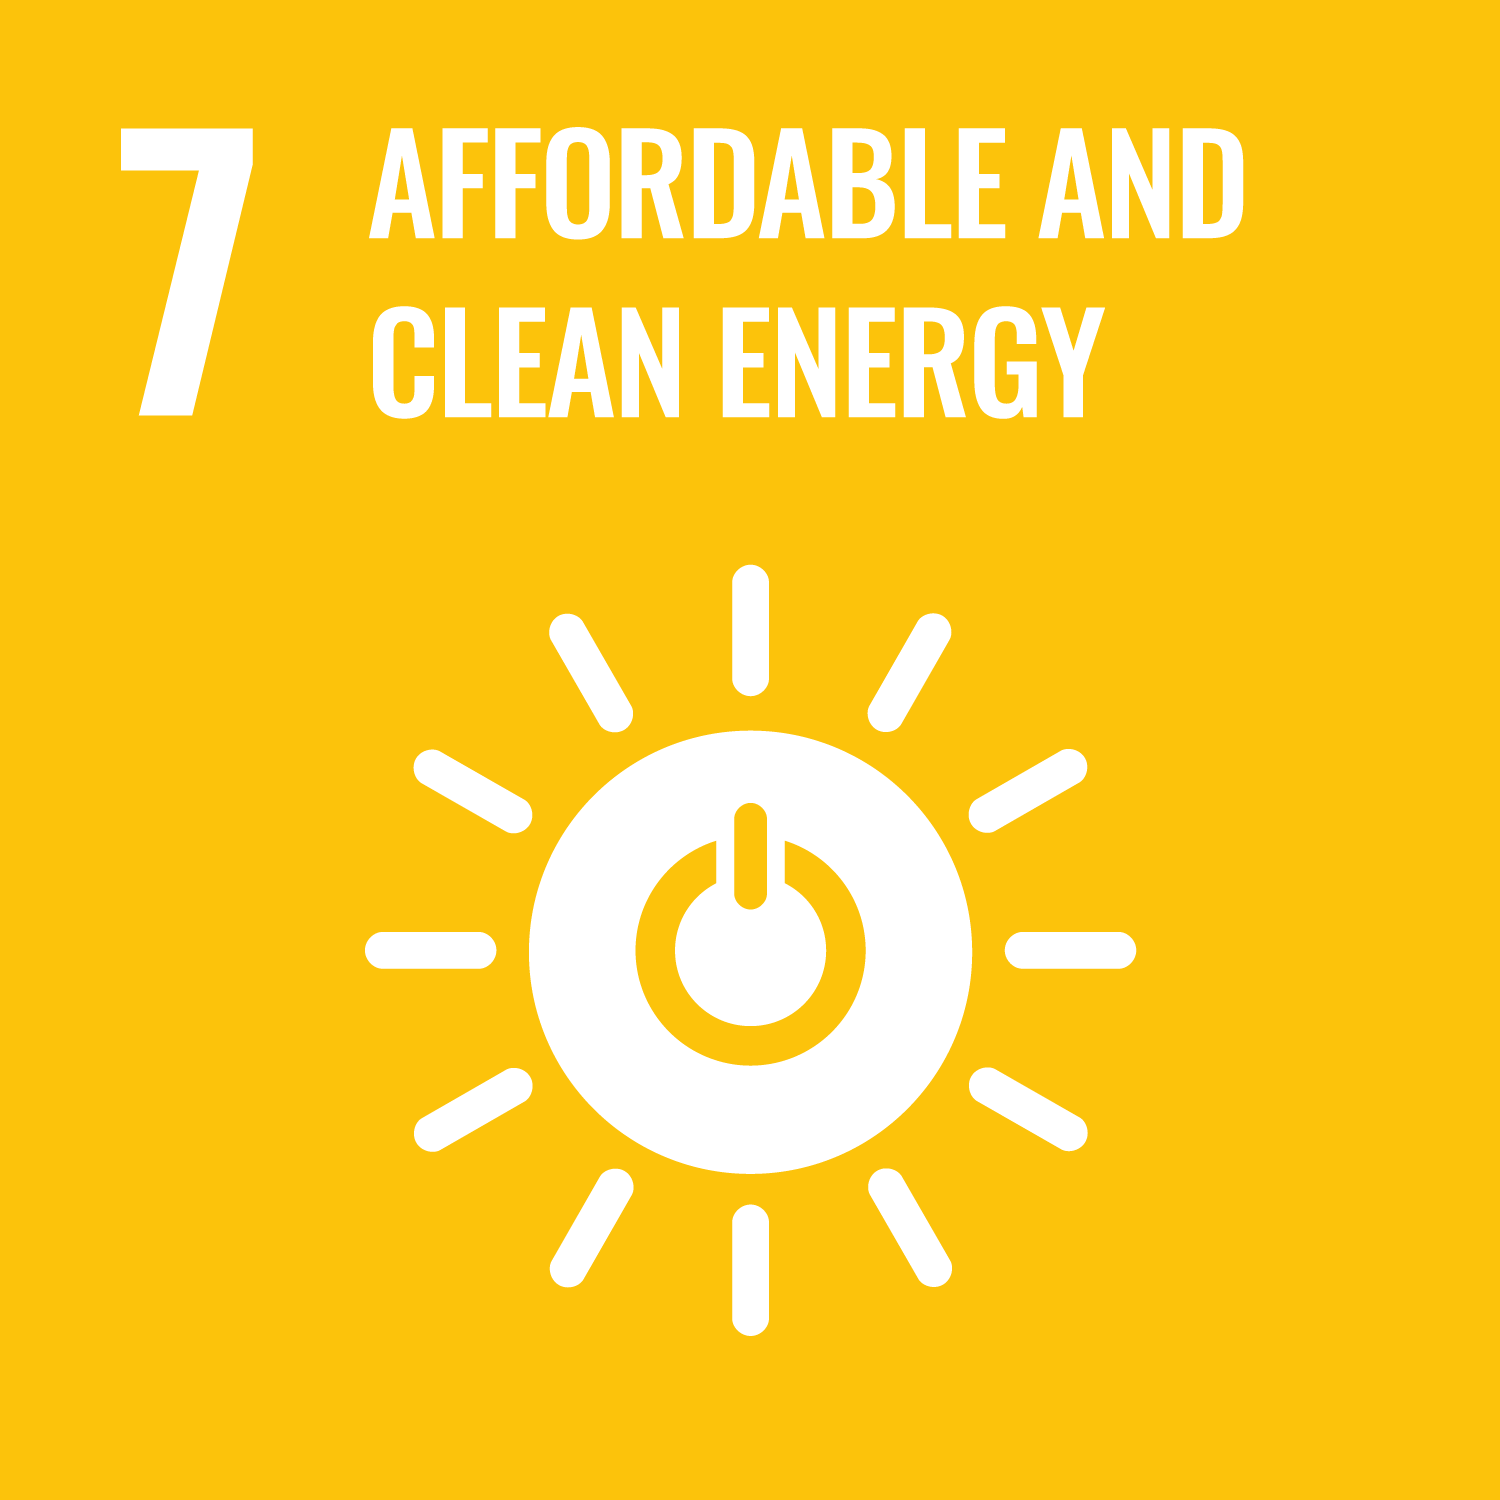 UN Sustainable goal - Affordable and clean energy